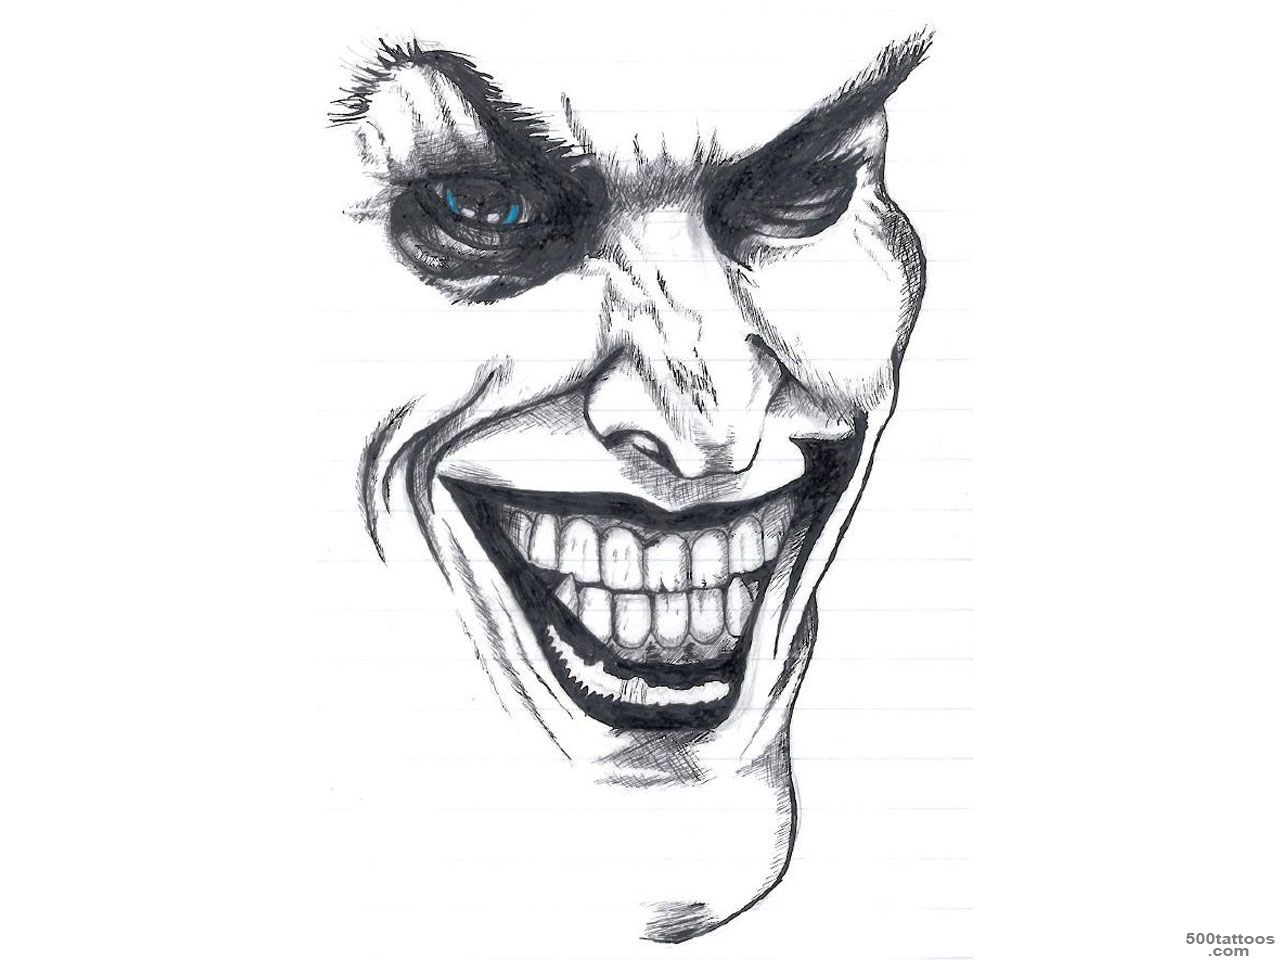 Smiling Jester Joker Tattoo Design   Tattoes Idea 2015  2016_7